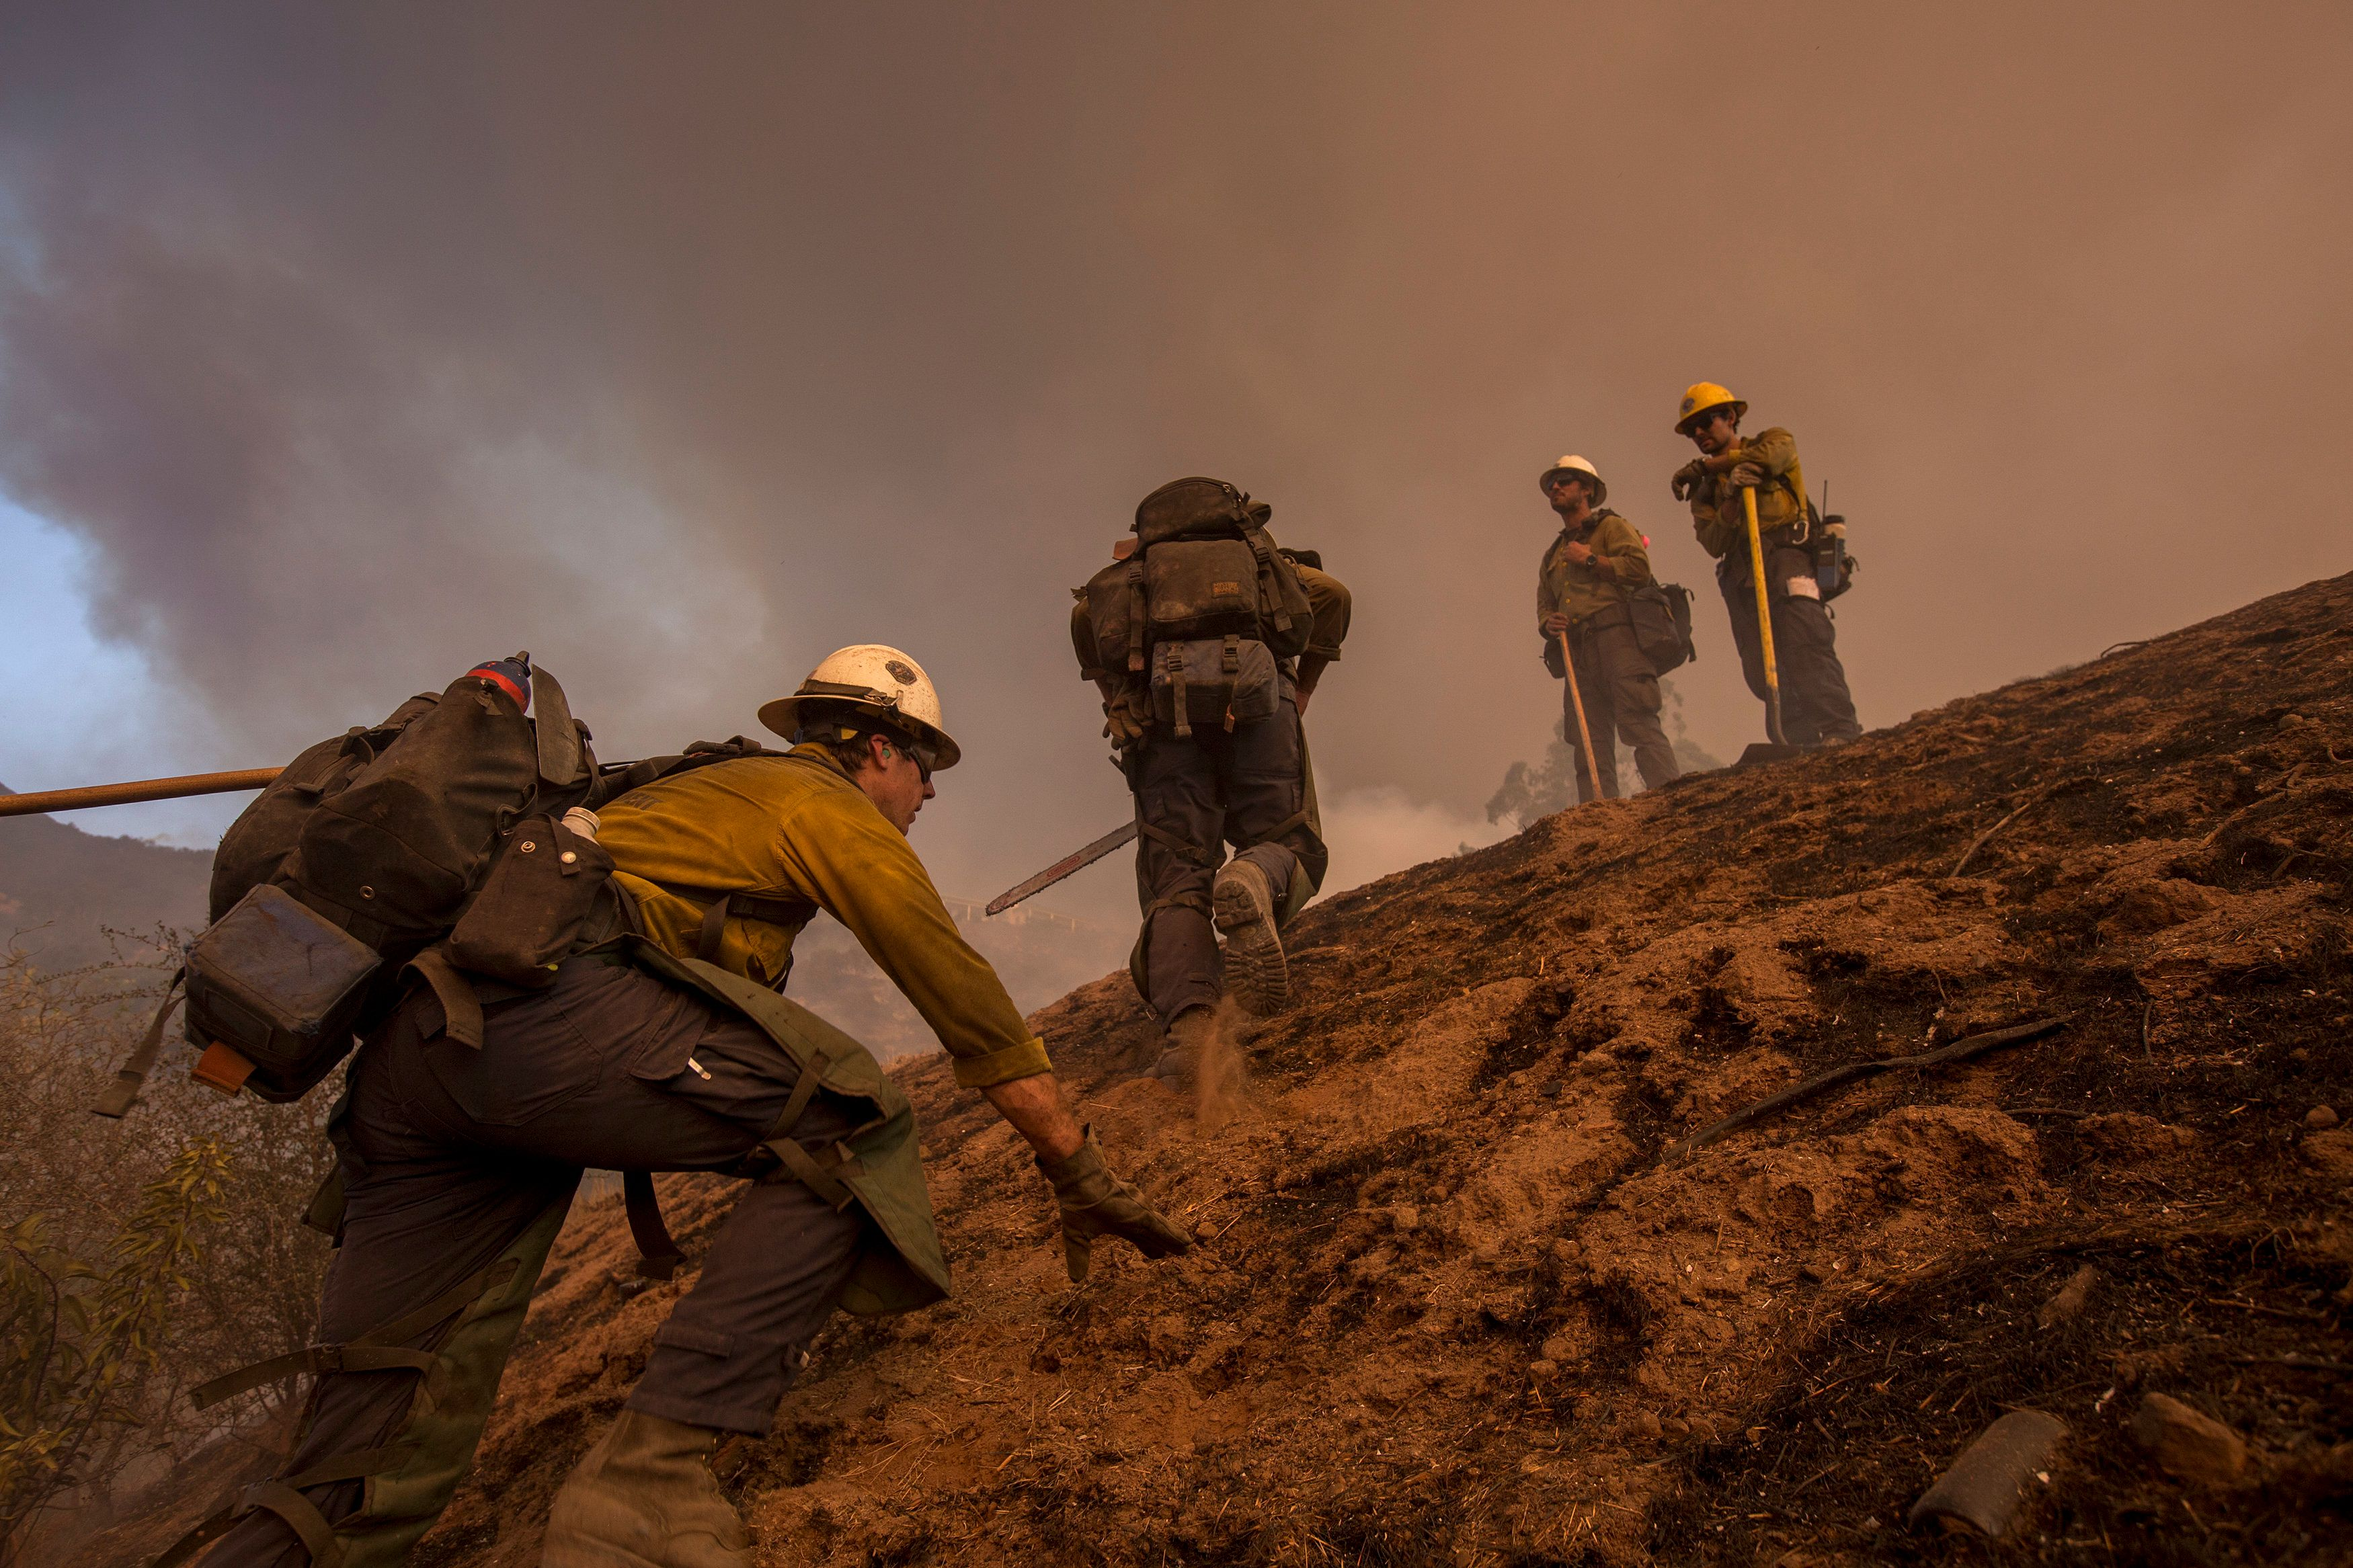 MONTECITO, CA - DECEMBER 16: A Hot Shot crew climbs a steep hill while cutting a line among homes at the Thomas Fire on December 16, 2017 in Montecito, California. The National Weather Service has issued red flag warnings of dangerous fire weather in Southern California for the duration of the weekend. Prior to the weekend, Los Angeles and Ventura counties had 12 consecutive days of red flag fire warnings, the longest sustained period of fire weather warnings on record. The Thomas Fire is currently the fourth largest California fire since records began in 1932, growing to 400 square miles and destroying more than 1,000 structures since it began on December 4. (Photo by David McNew/Getty Images)